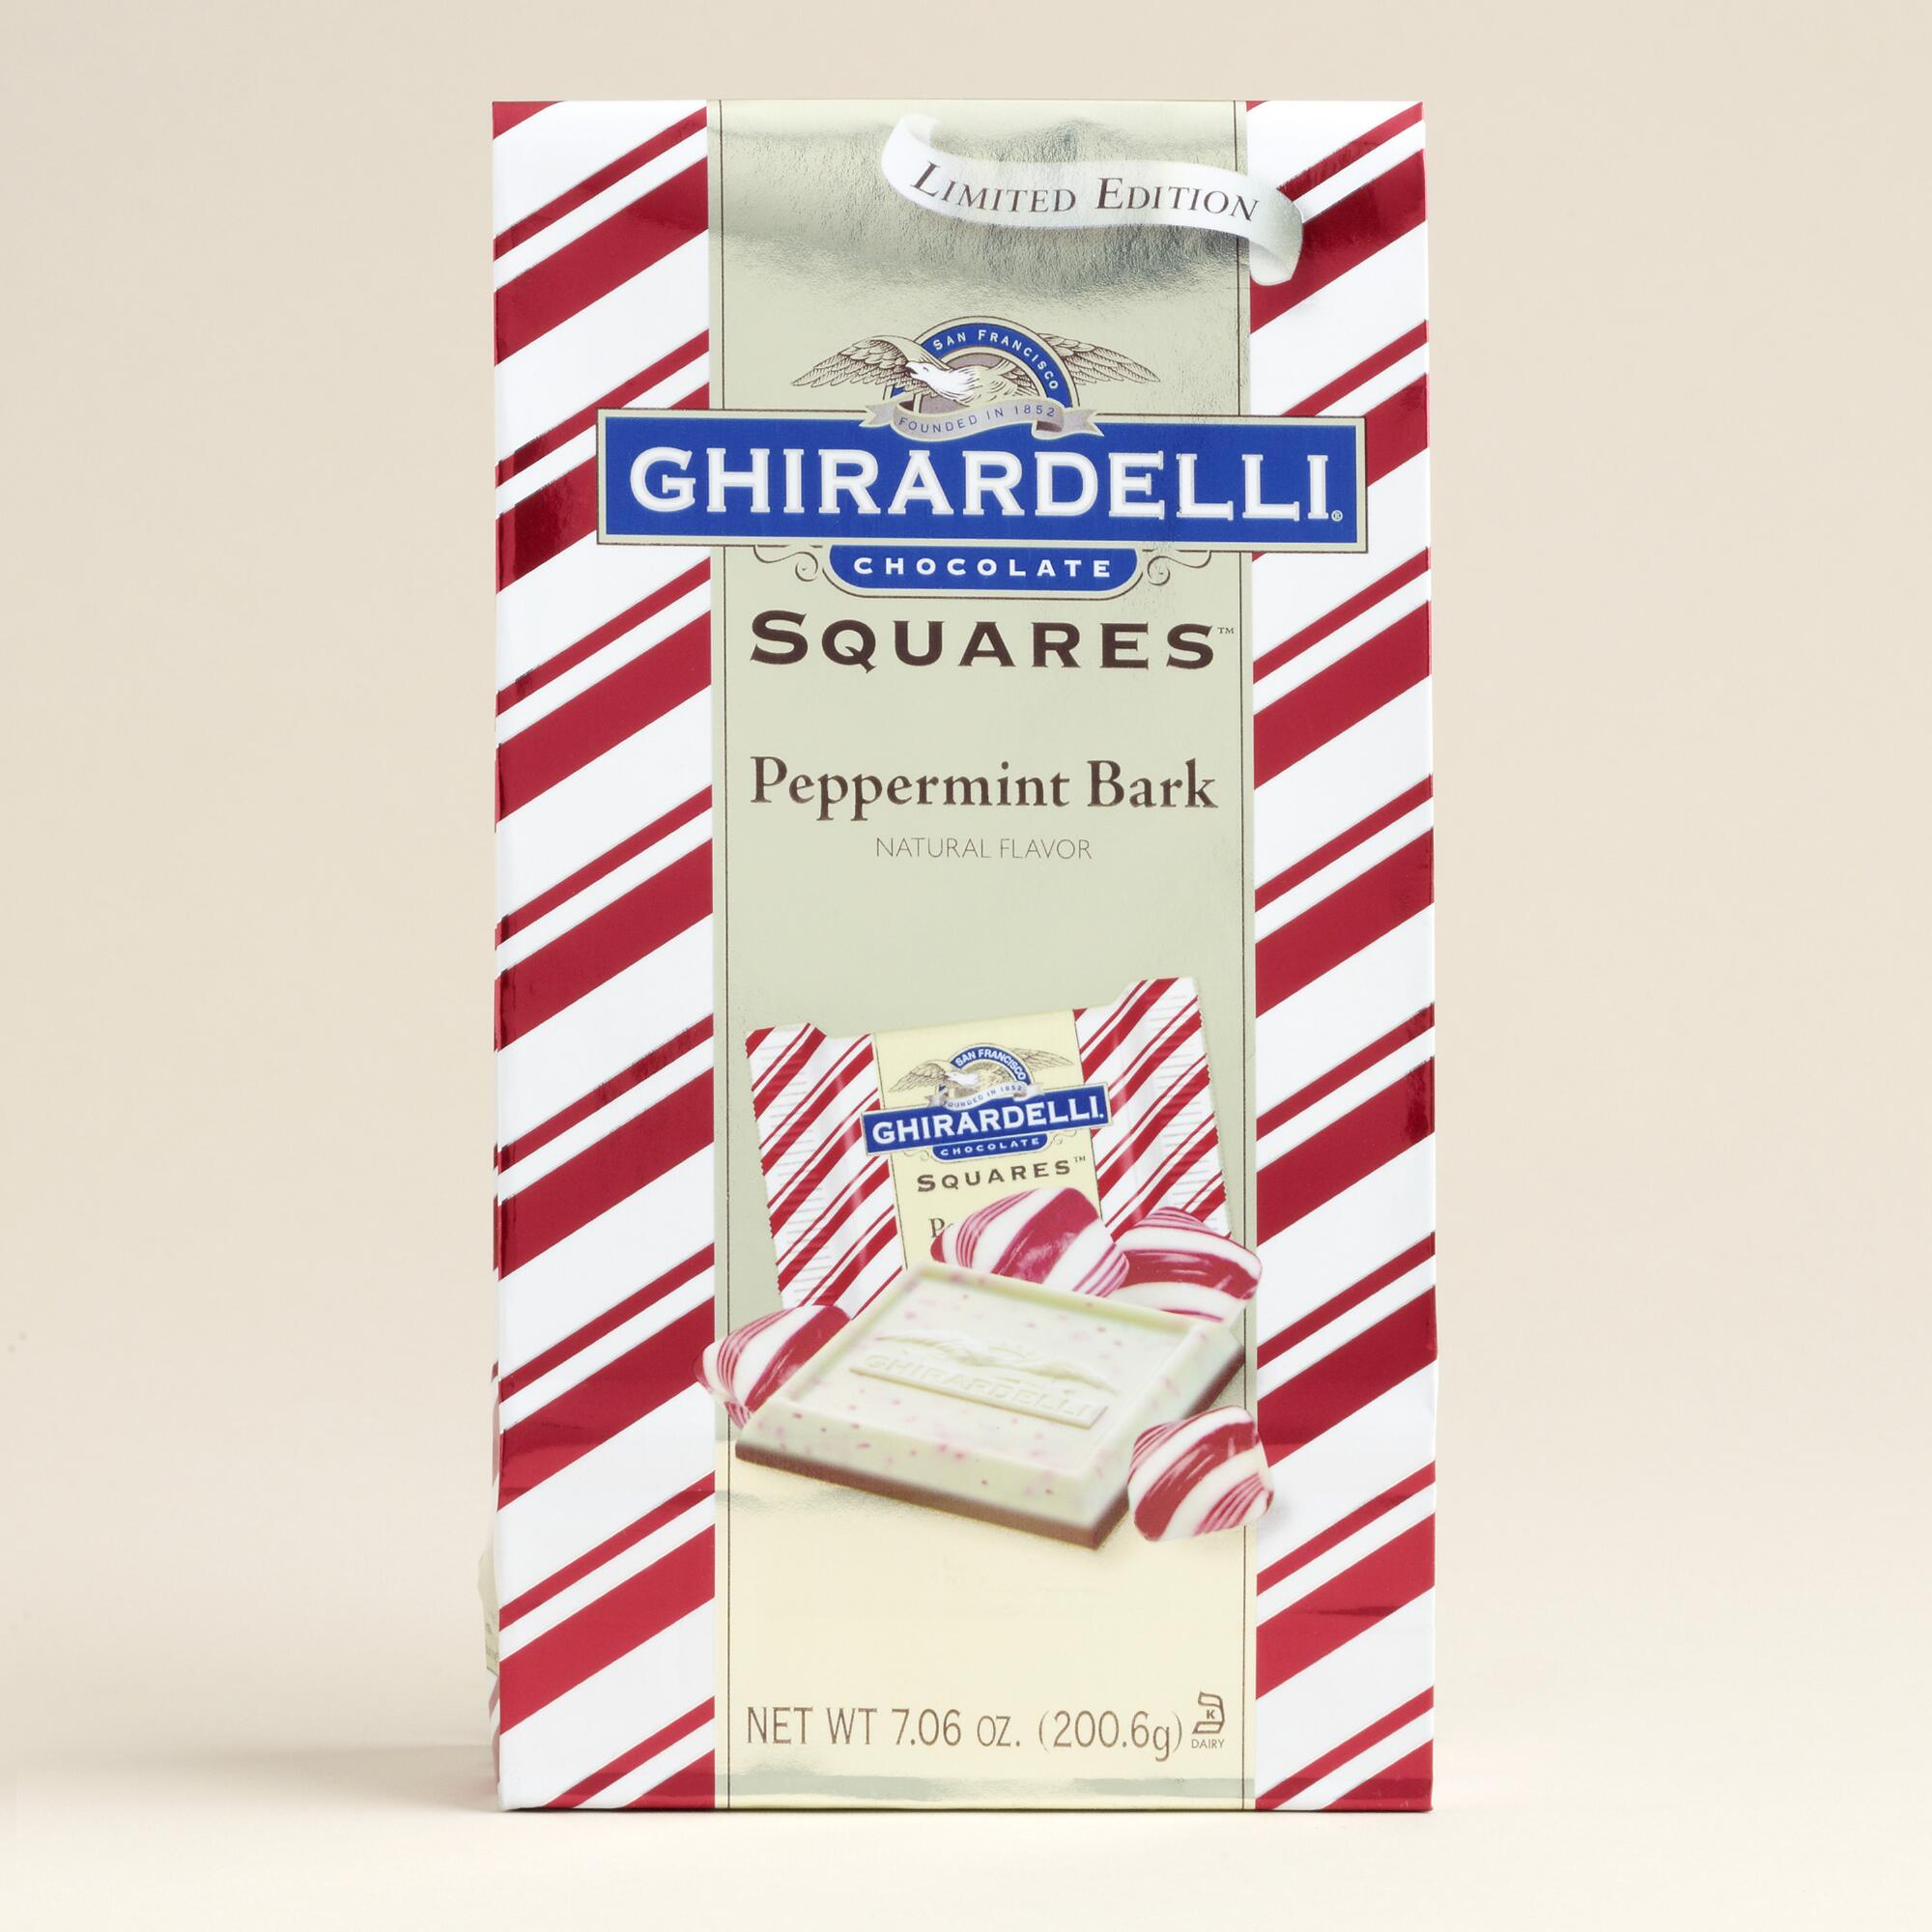 Ghirardelli Peppermint Bark Images & Pictures - Becuo